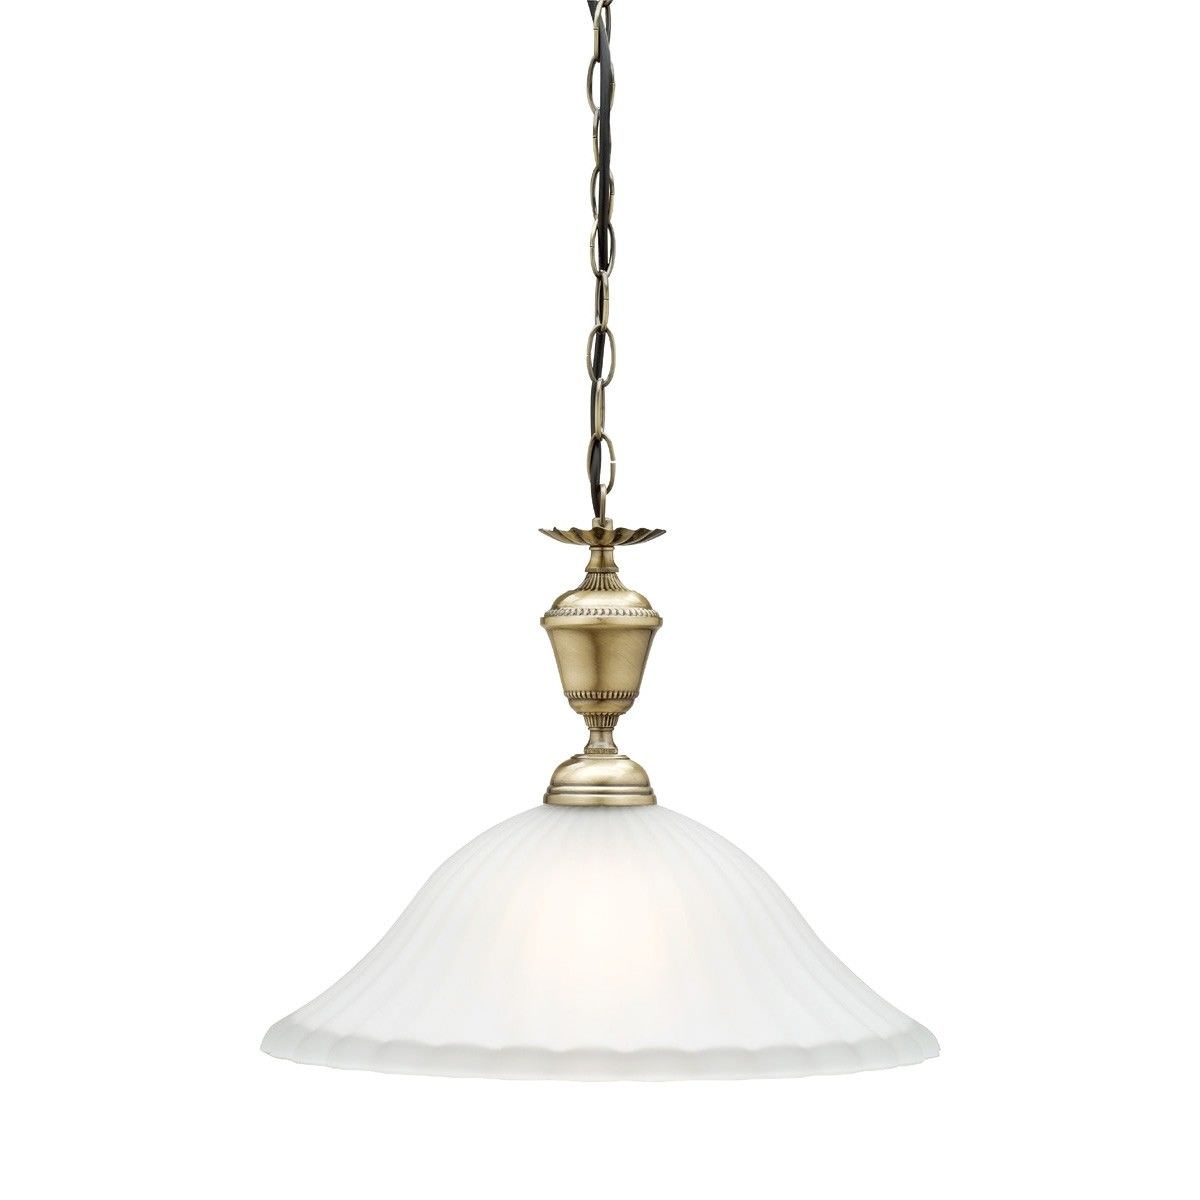 Edgewood Pendant Light